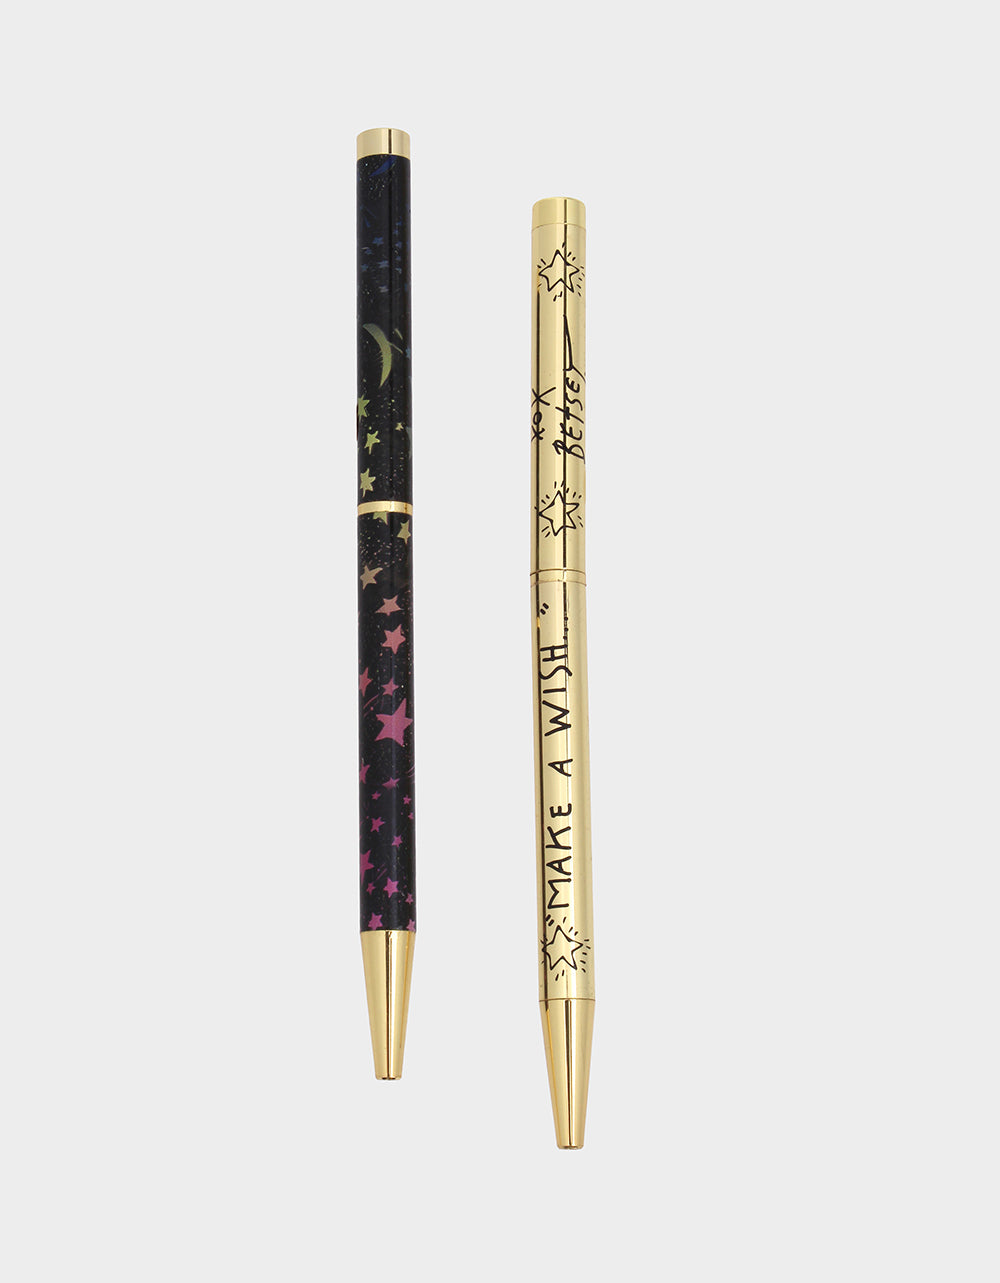 GIFTY BETSEY STARS PEN SET MULTI - ACCESSORIES - Betsey Johnson